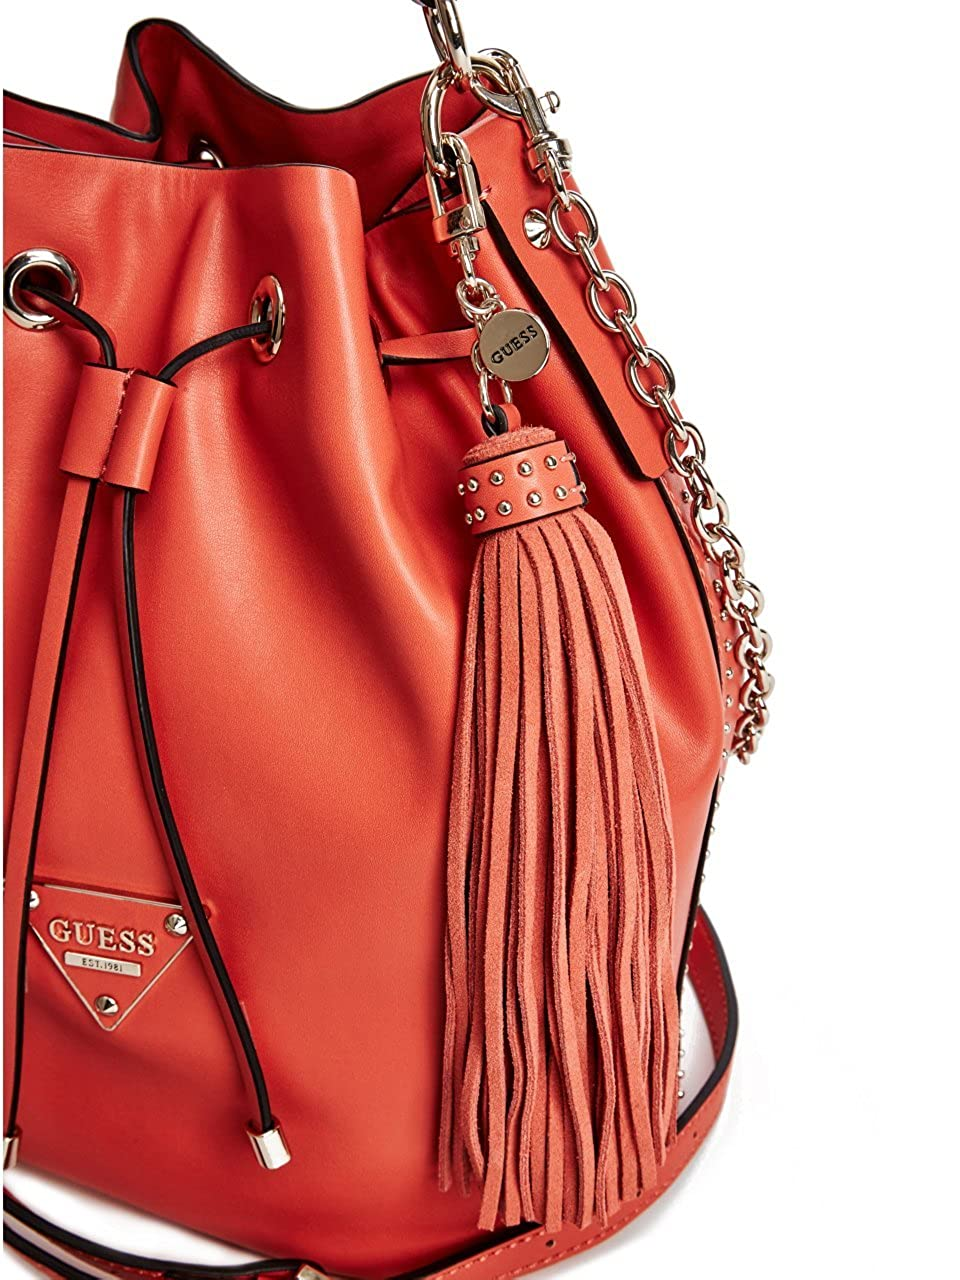 a44d329aed Amazon.com  GUESS Women s Thompson Drawstring Bucket Bag  Clothing